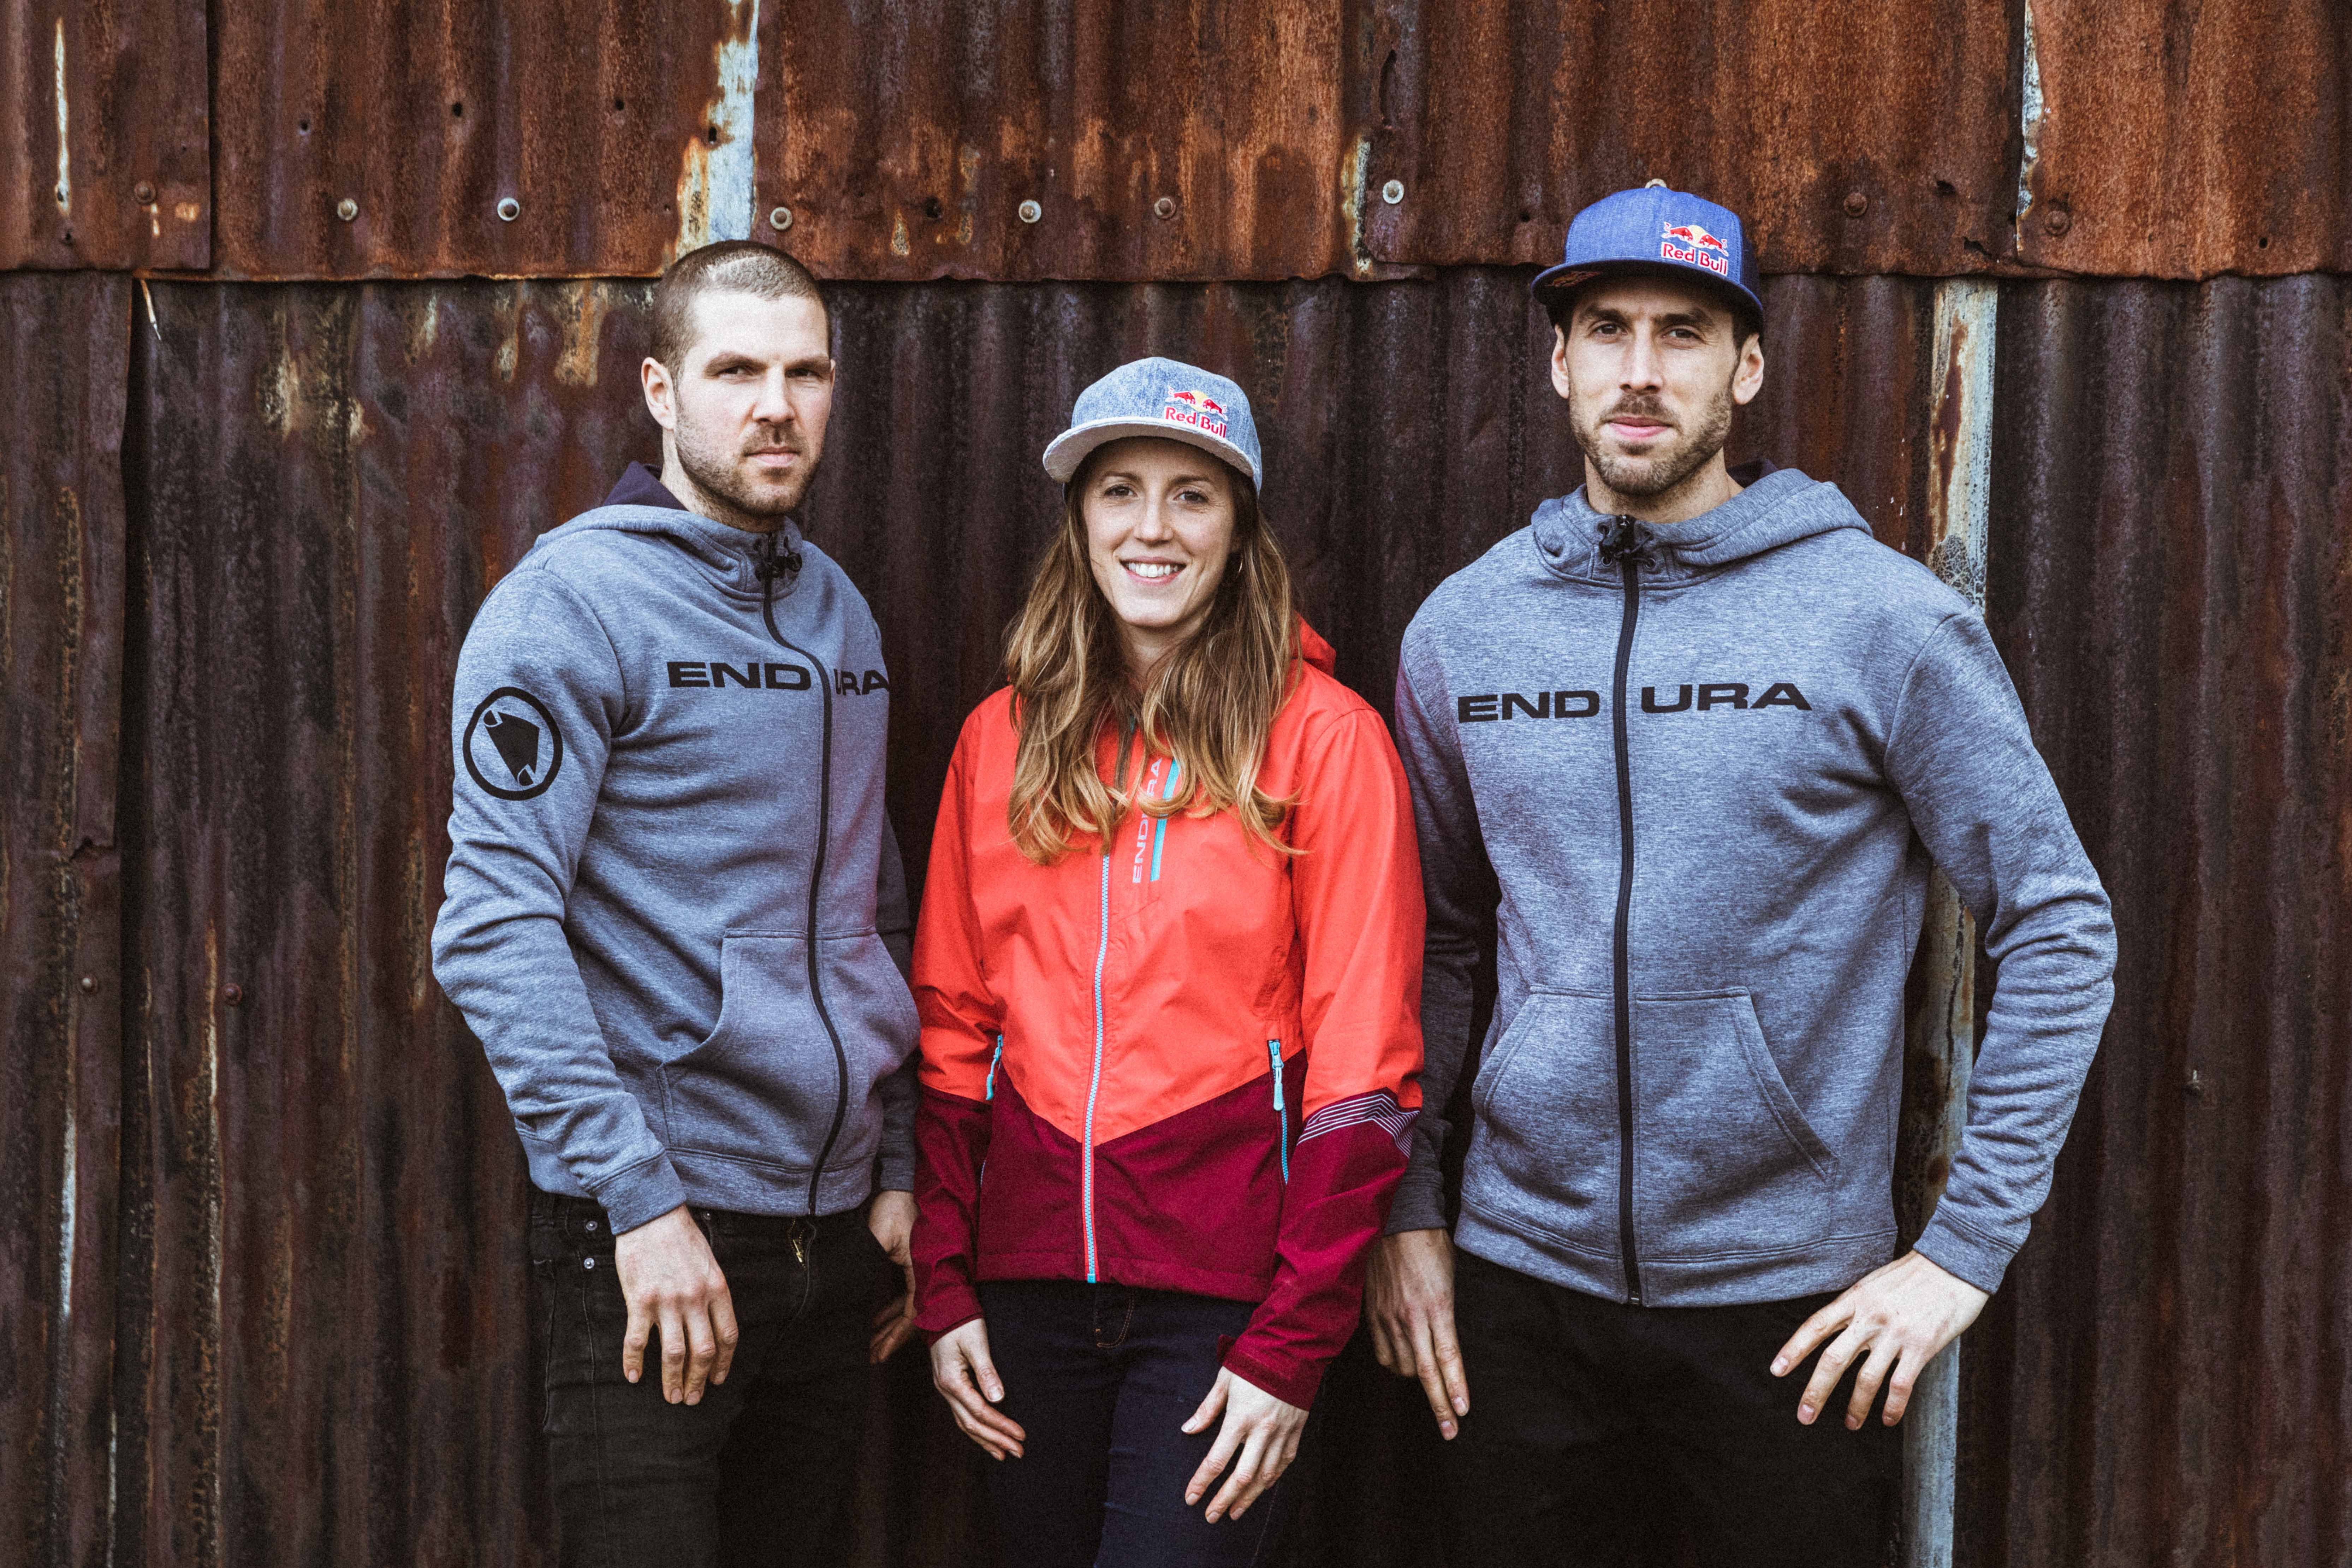 f1f7cfc6b2a Atherton siblings Gee, Rachel and Dan. The Atherton siblings Gee, Rachel  and Dan have announced they're launching their own bike brand.